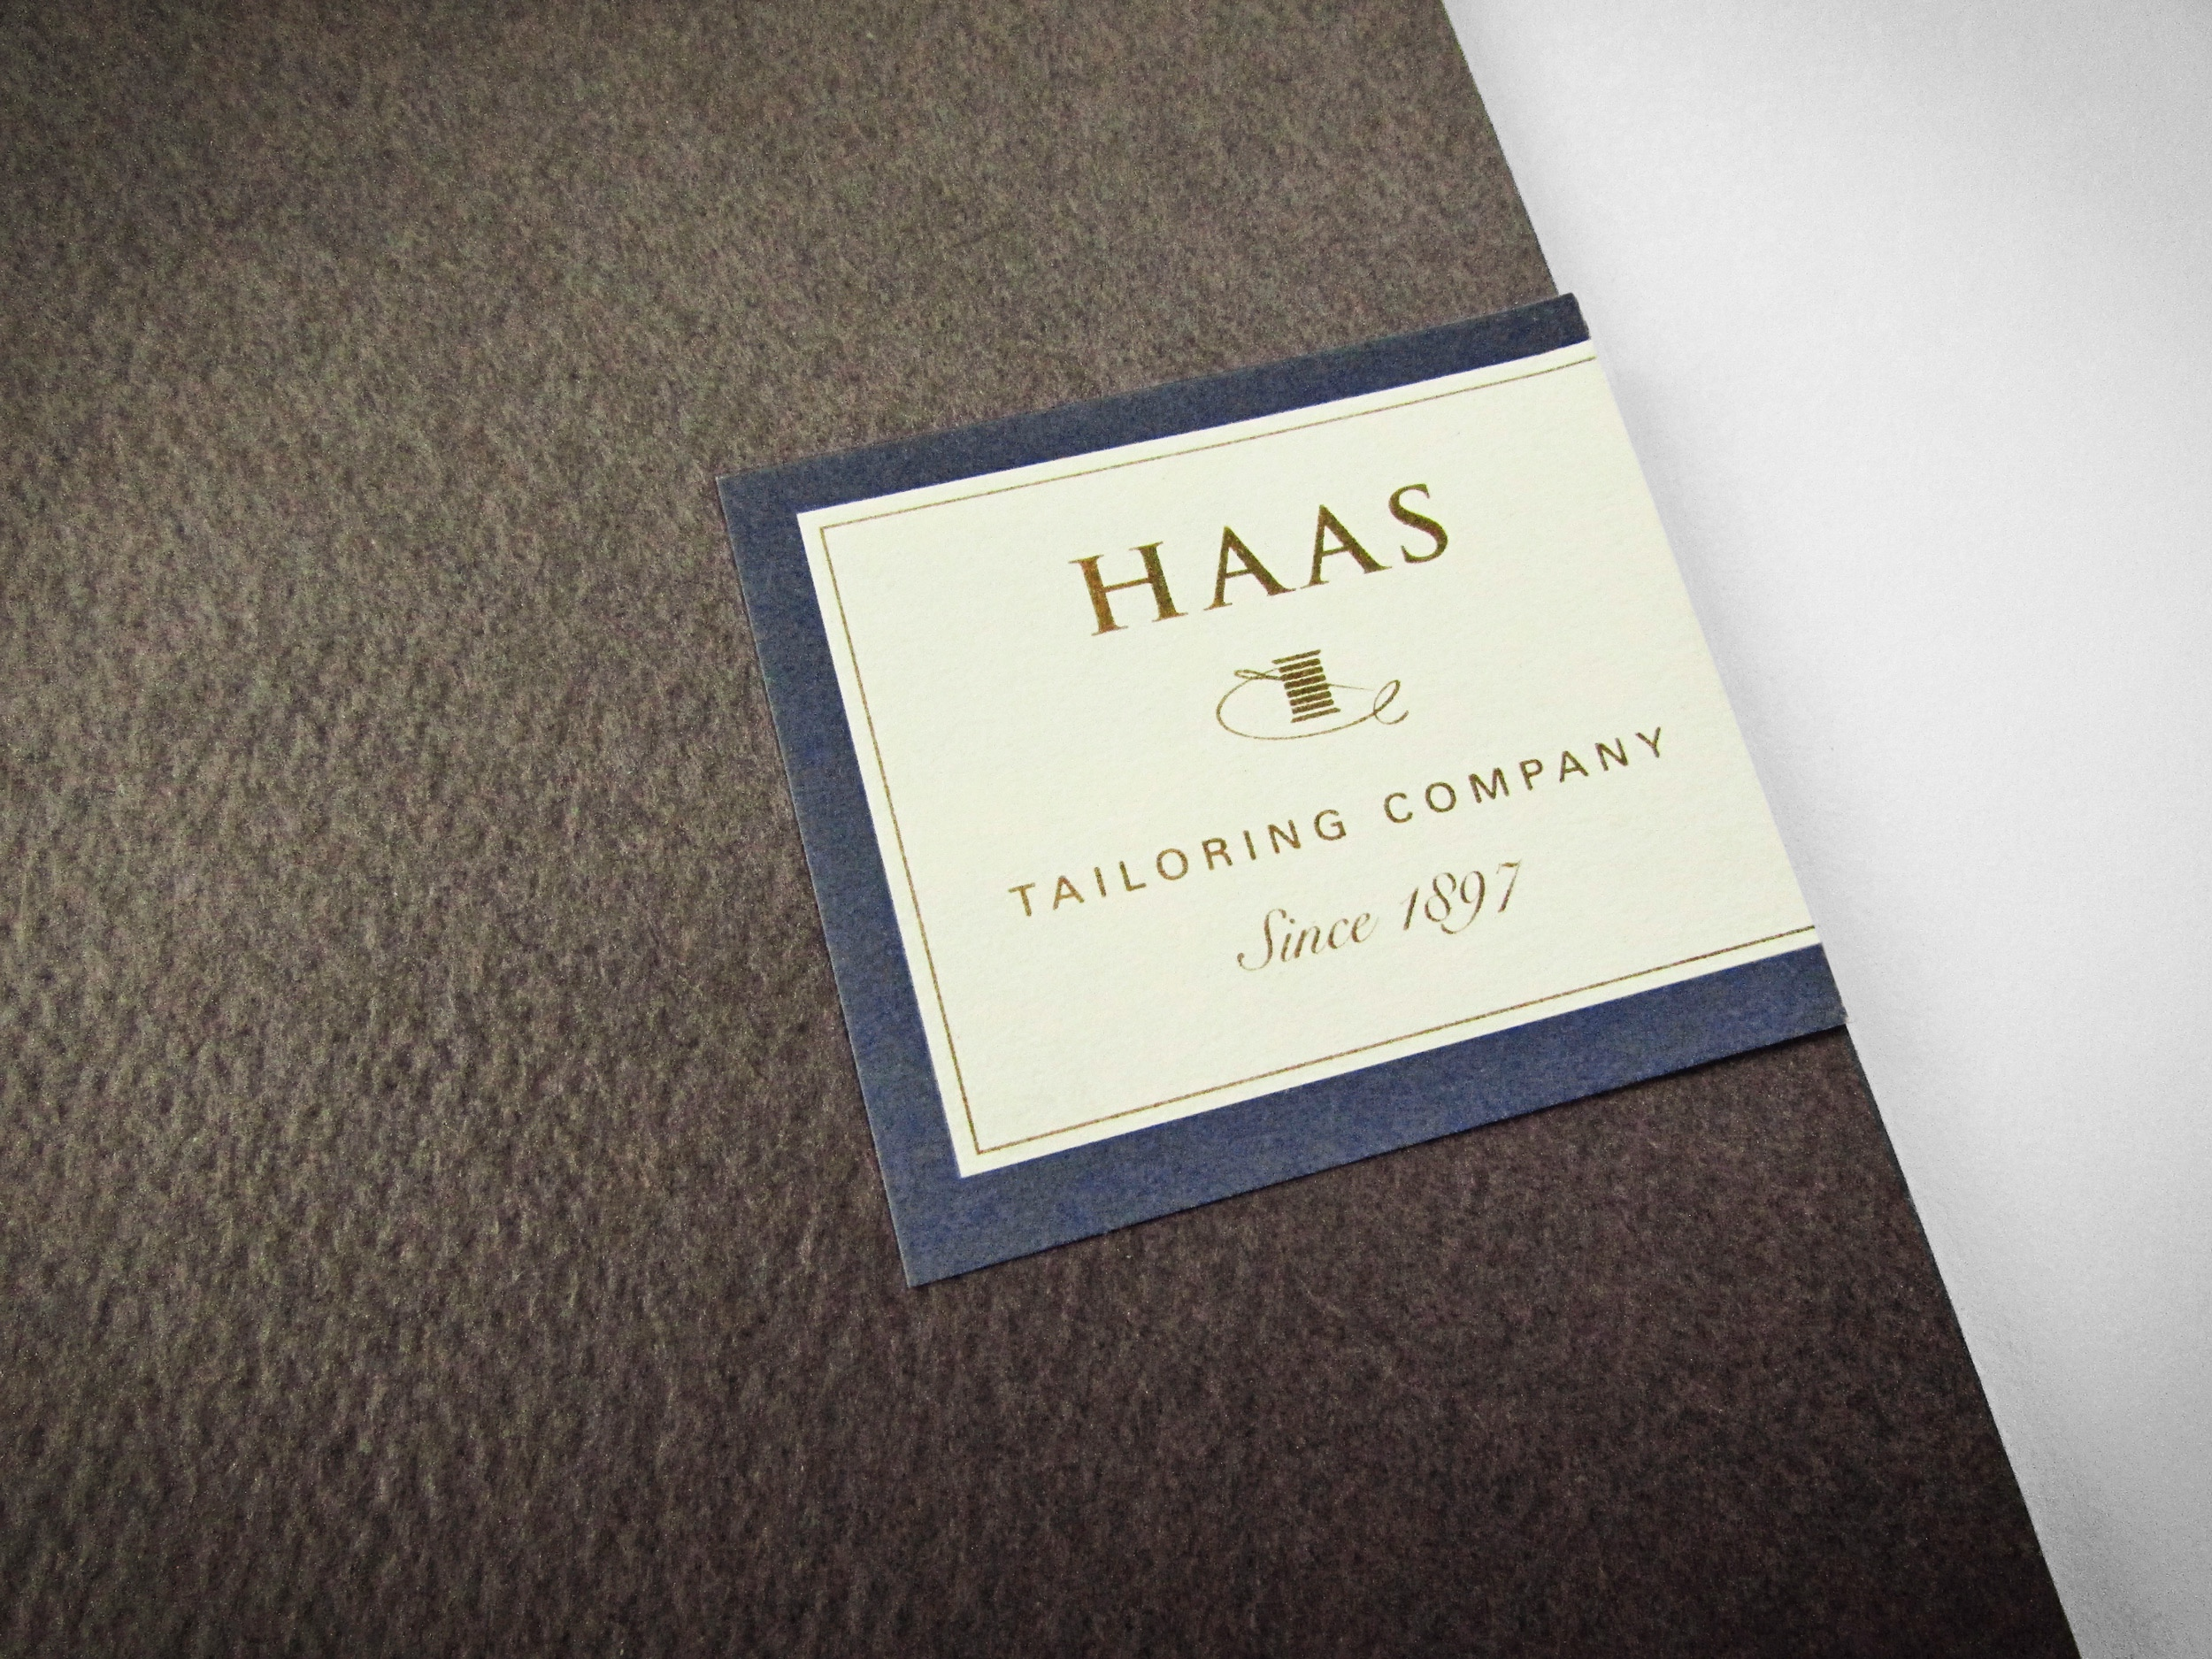 Haas Tailoring Company - Brand Identity and Marketing Collateral